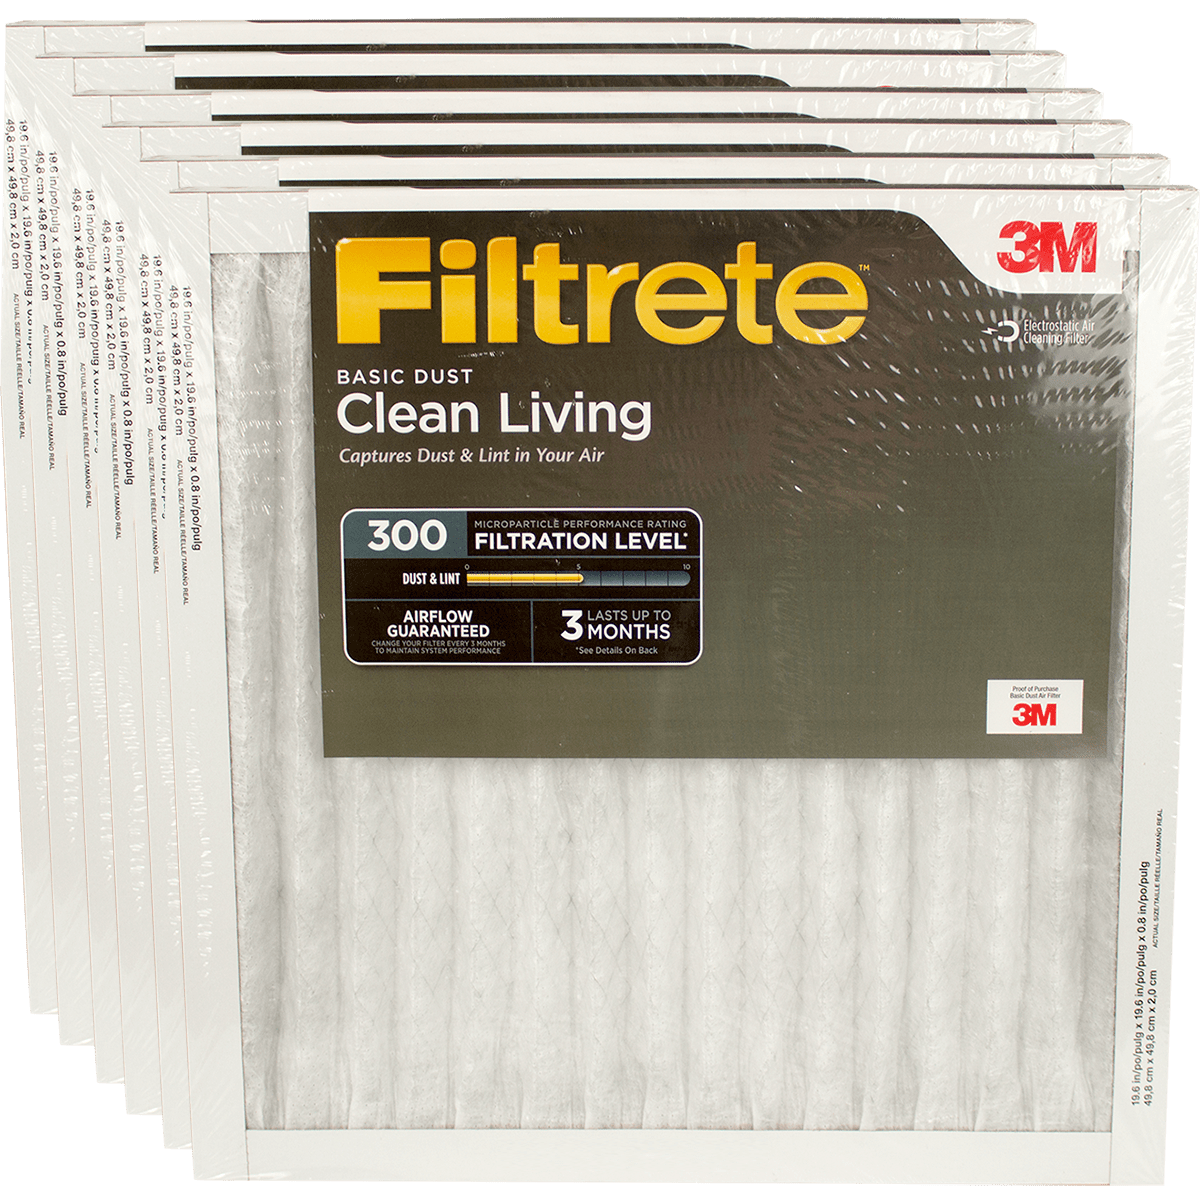 3M Filtrete 300 MPR Clean Living Basic Dust Reduction Air Filters, 1-inch 6-Pack fi5326